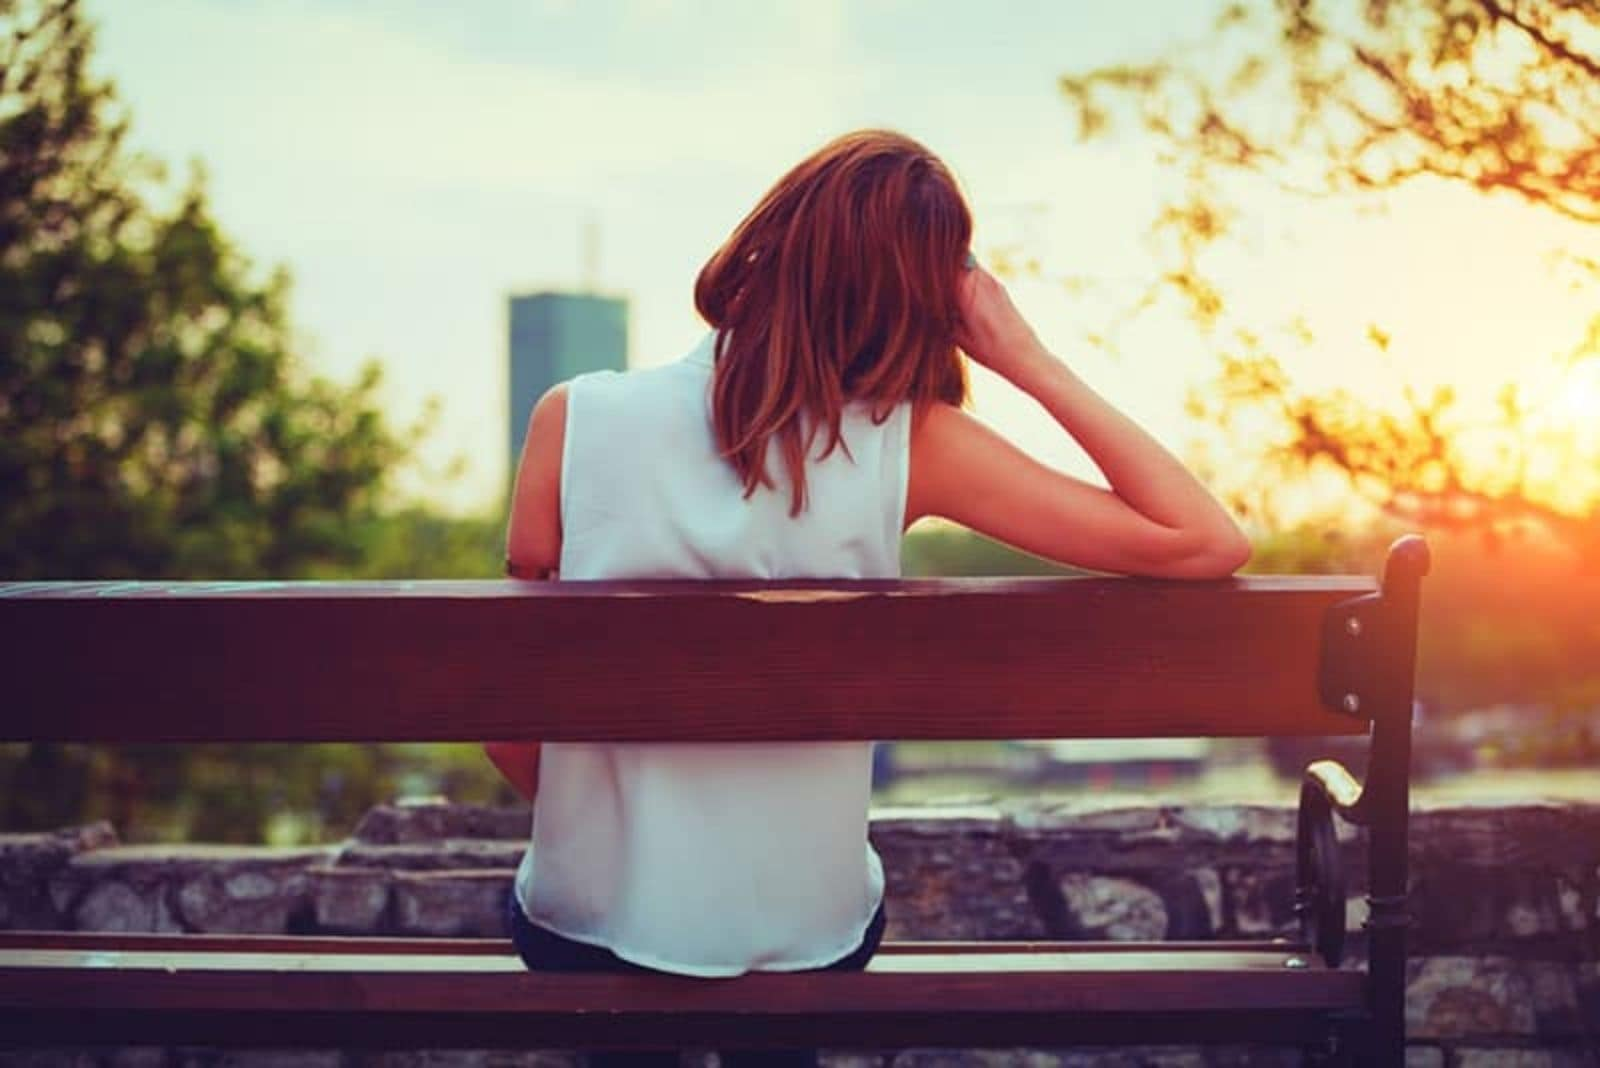 sad woman outside on the bench thoughtful